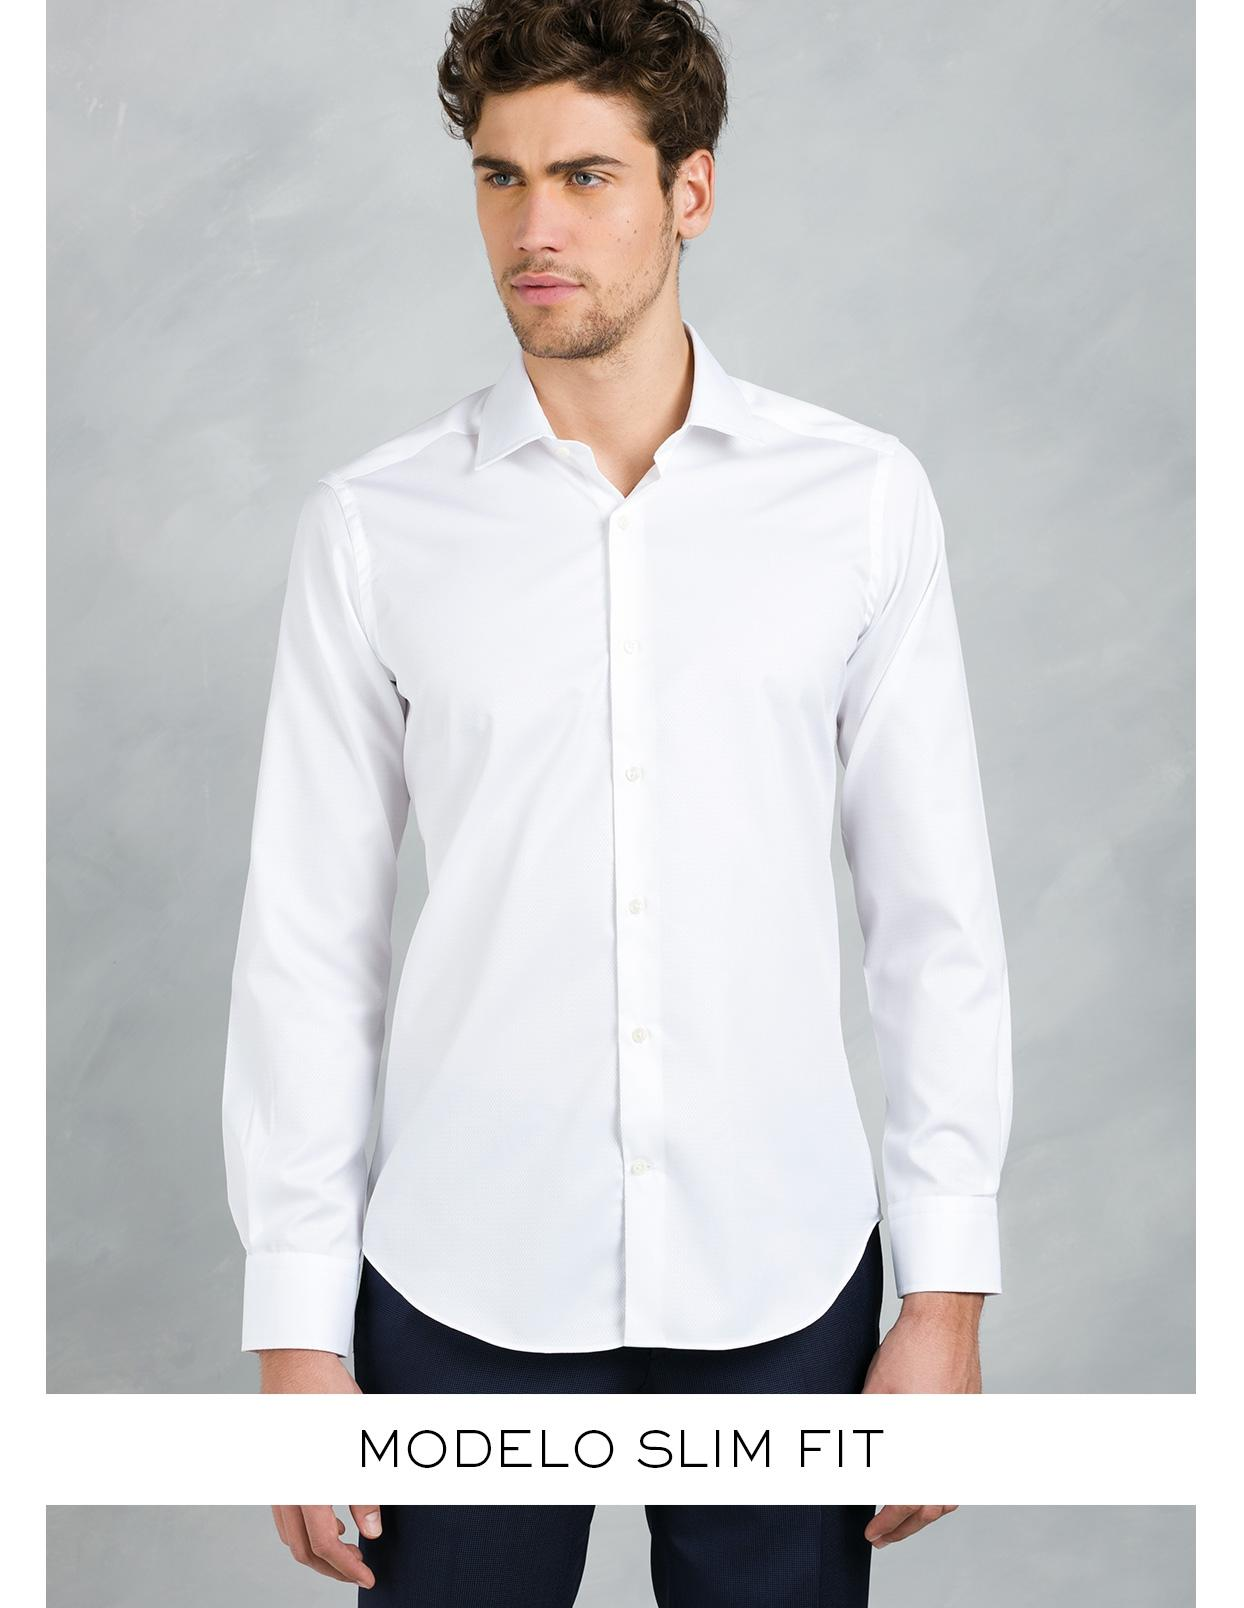 Camisa Formal Wear SLIM FIT cuello italiano modelo ROMA microtextura color blanco, 100% Algodón. - Ítem3